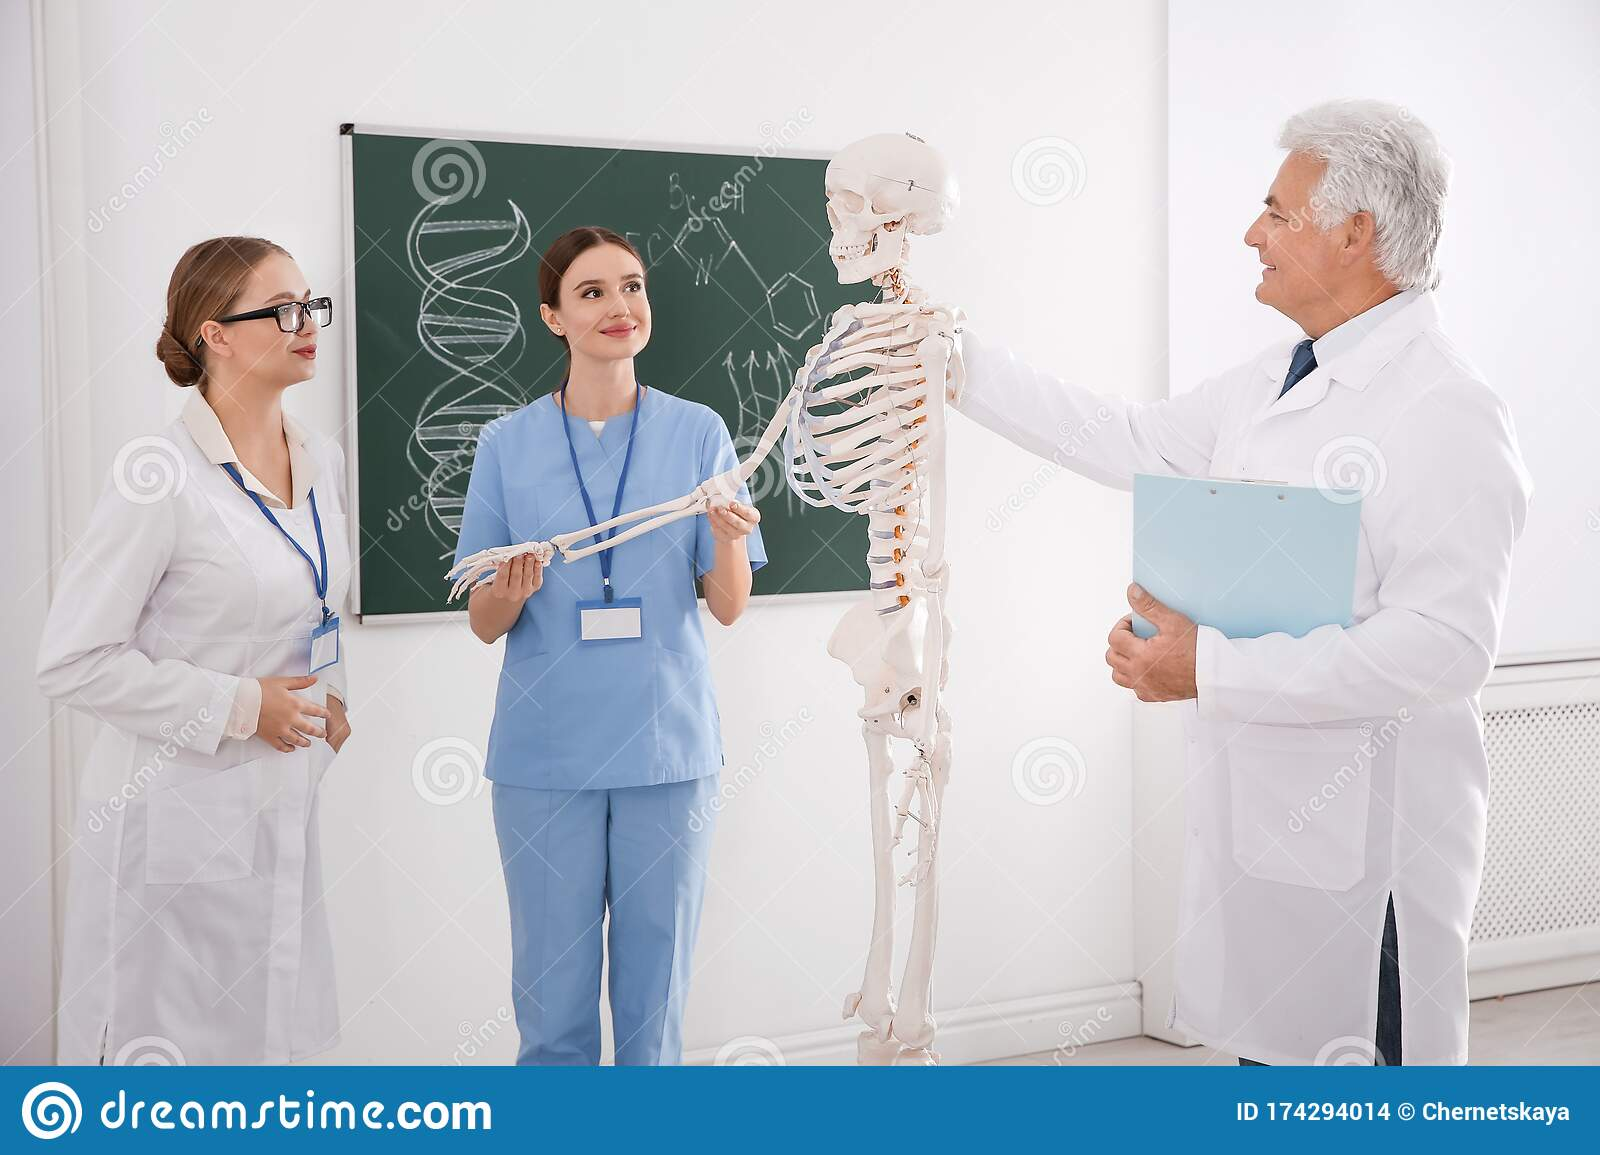 Medical Students And Professor Studying Human Skeleton